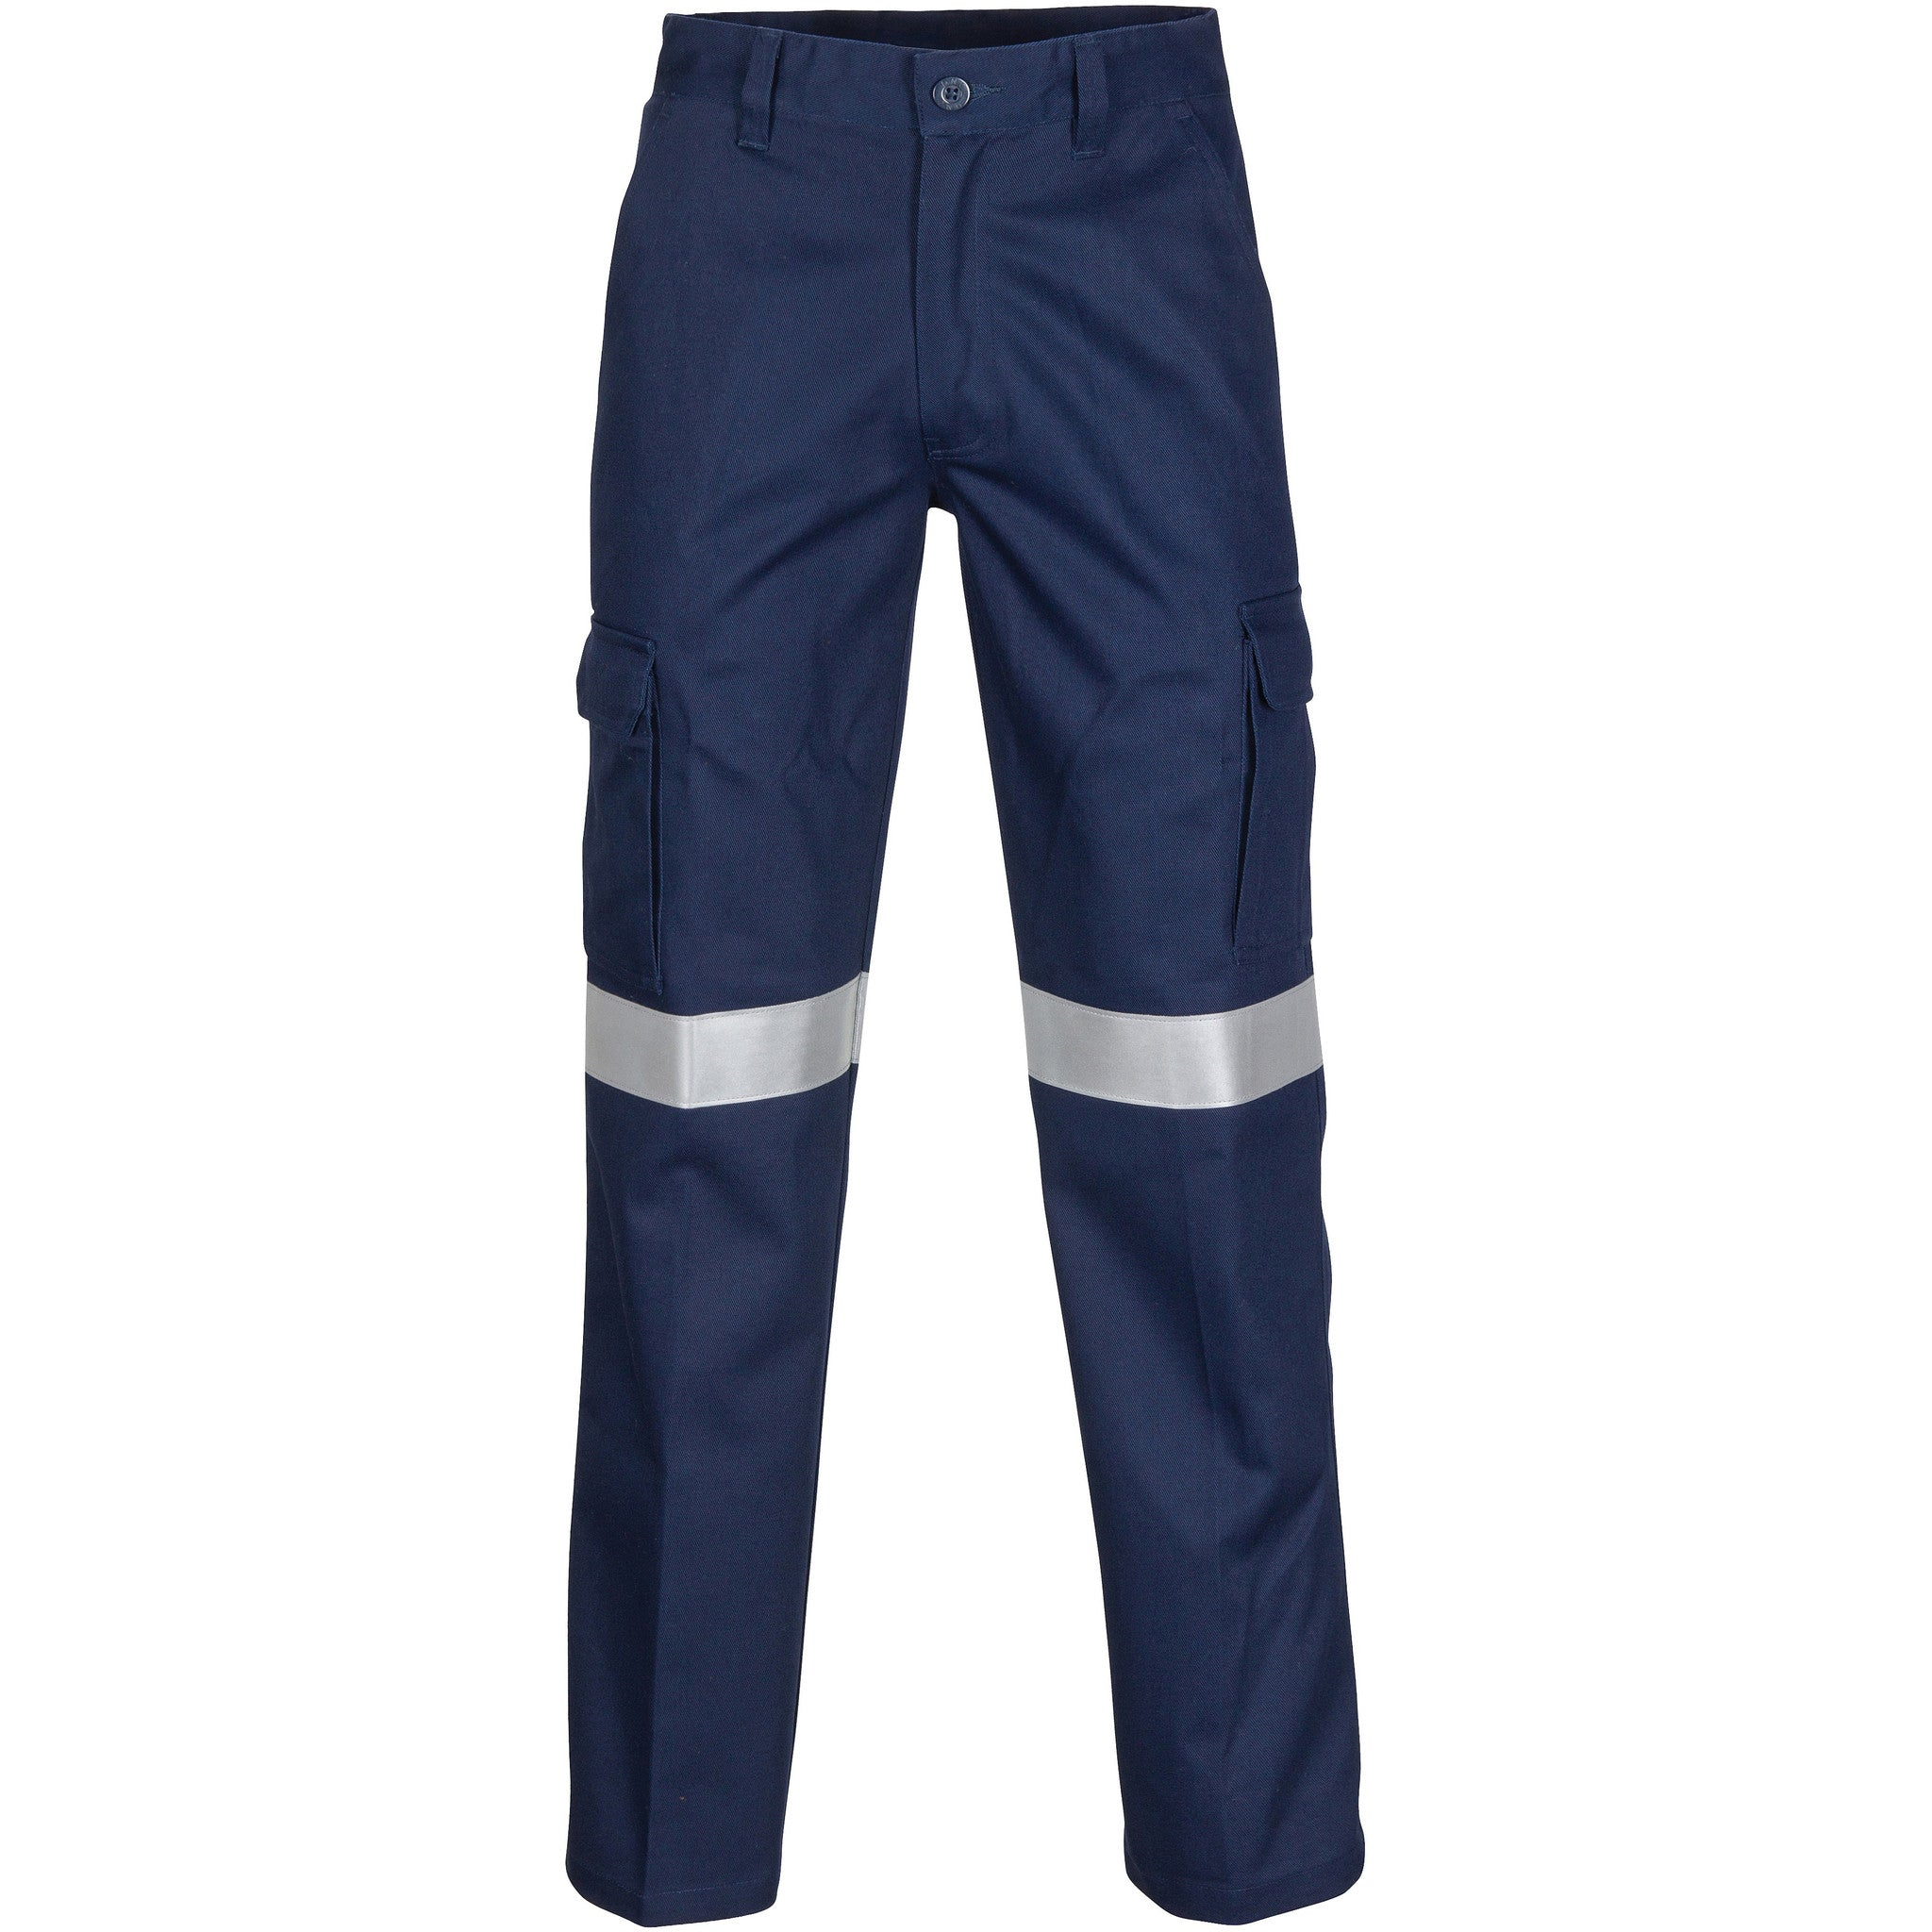 4c178d22381d DNC Patron Saint Flame Retardant Cargo Pants with 3M F R Tape (3419) –  Budget Workwear